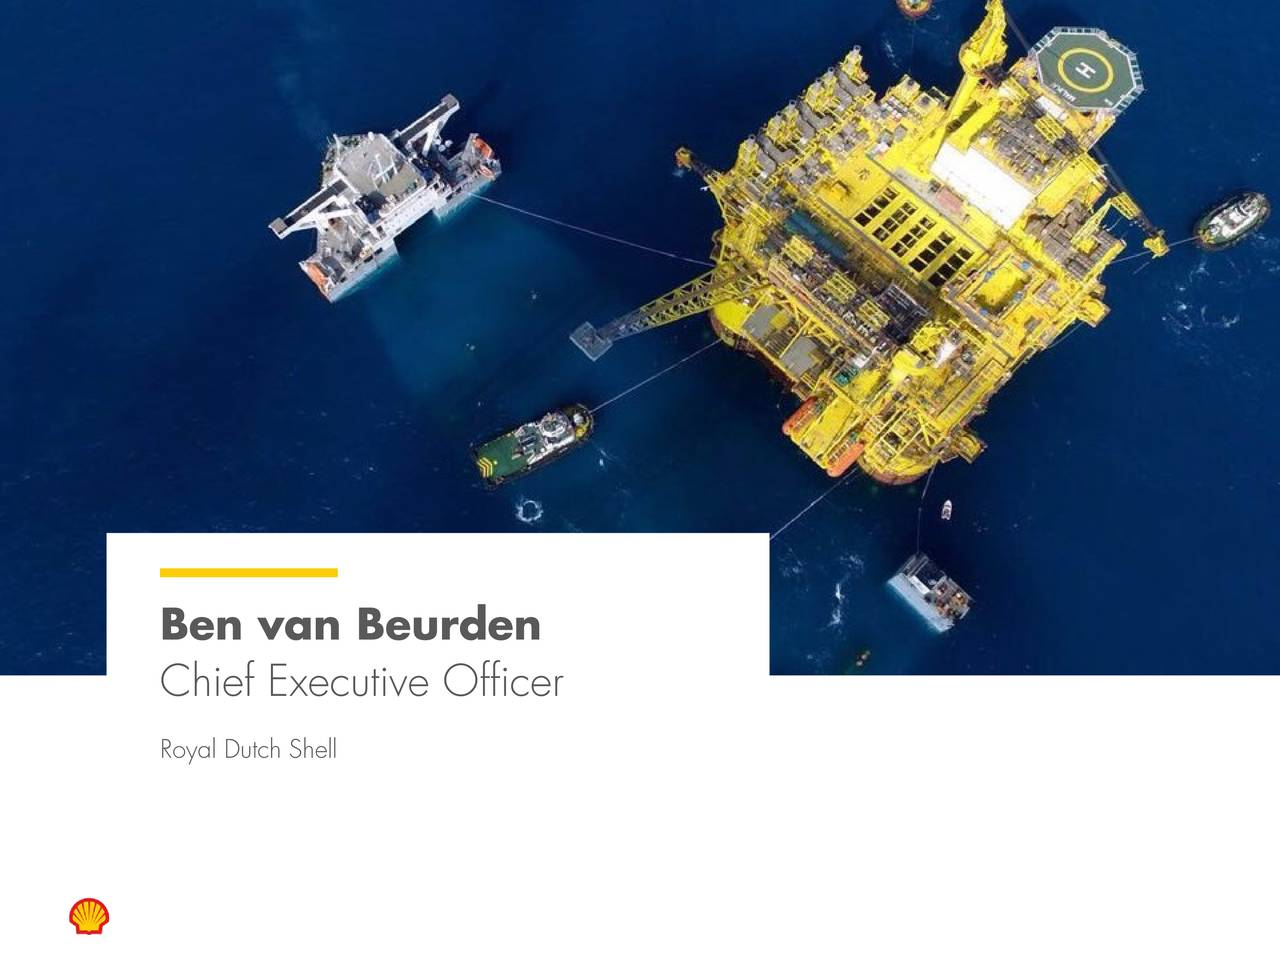 Chief Executive Officer Royal Dutch Shell